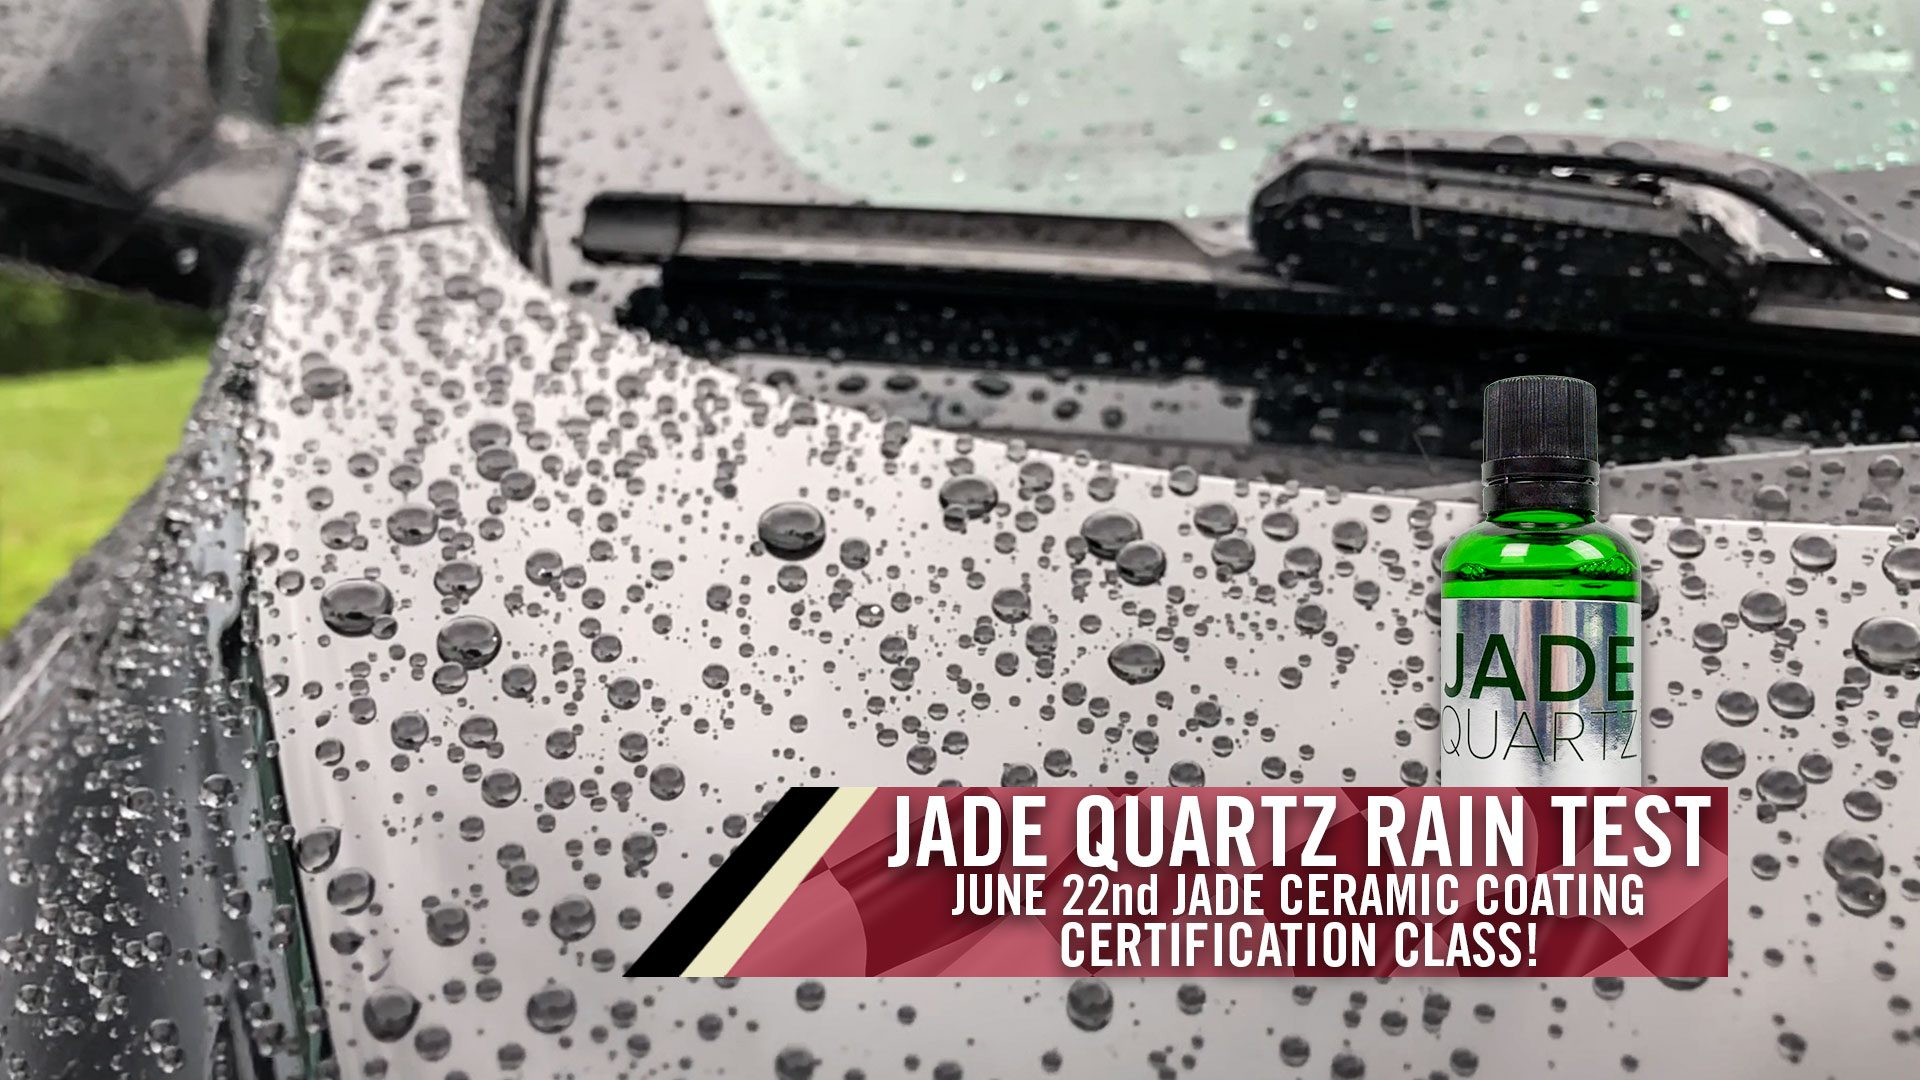 Jade Quartz Rain Test – Jade Ceramic Coating Certification Class